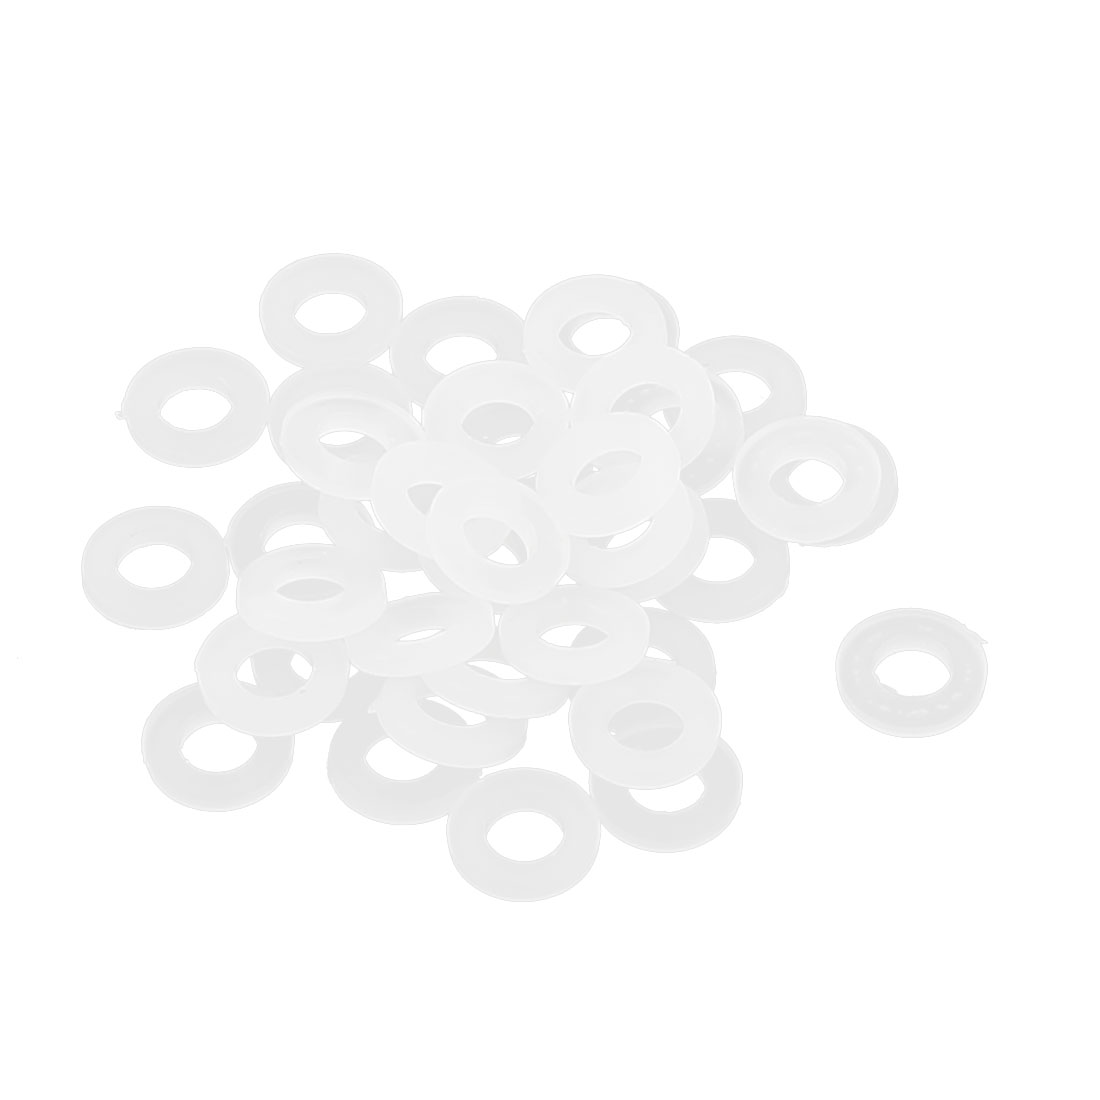 White Round Insulation Nylon Spacer Flat Washer Gasket Ring 3 x 6 x 1mm 50pcs